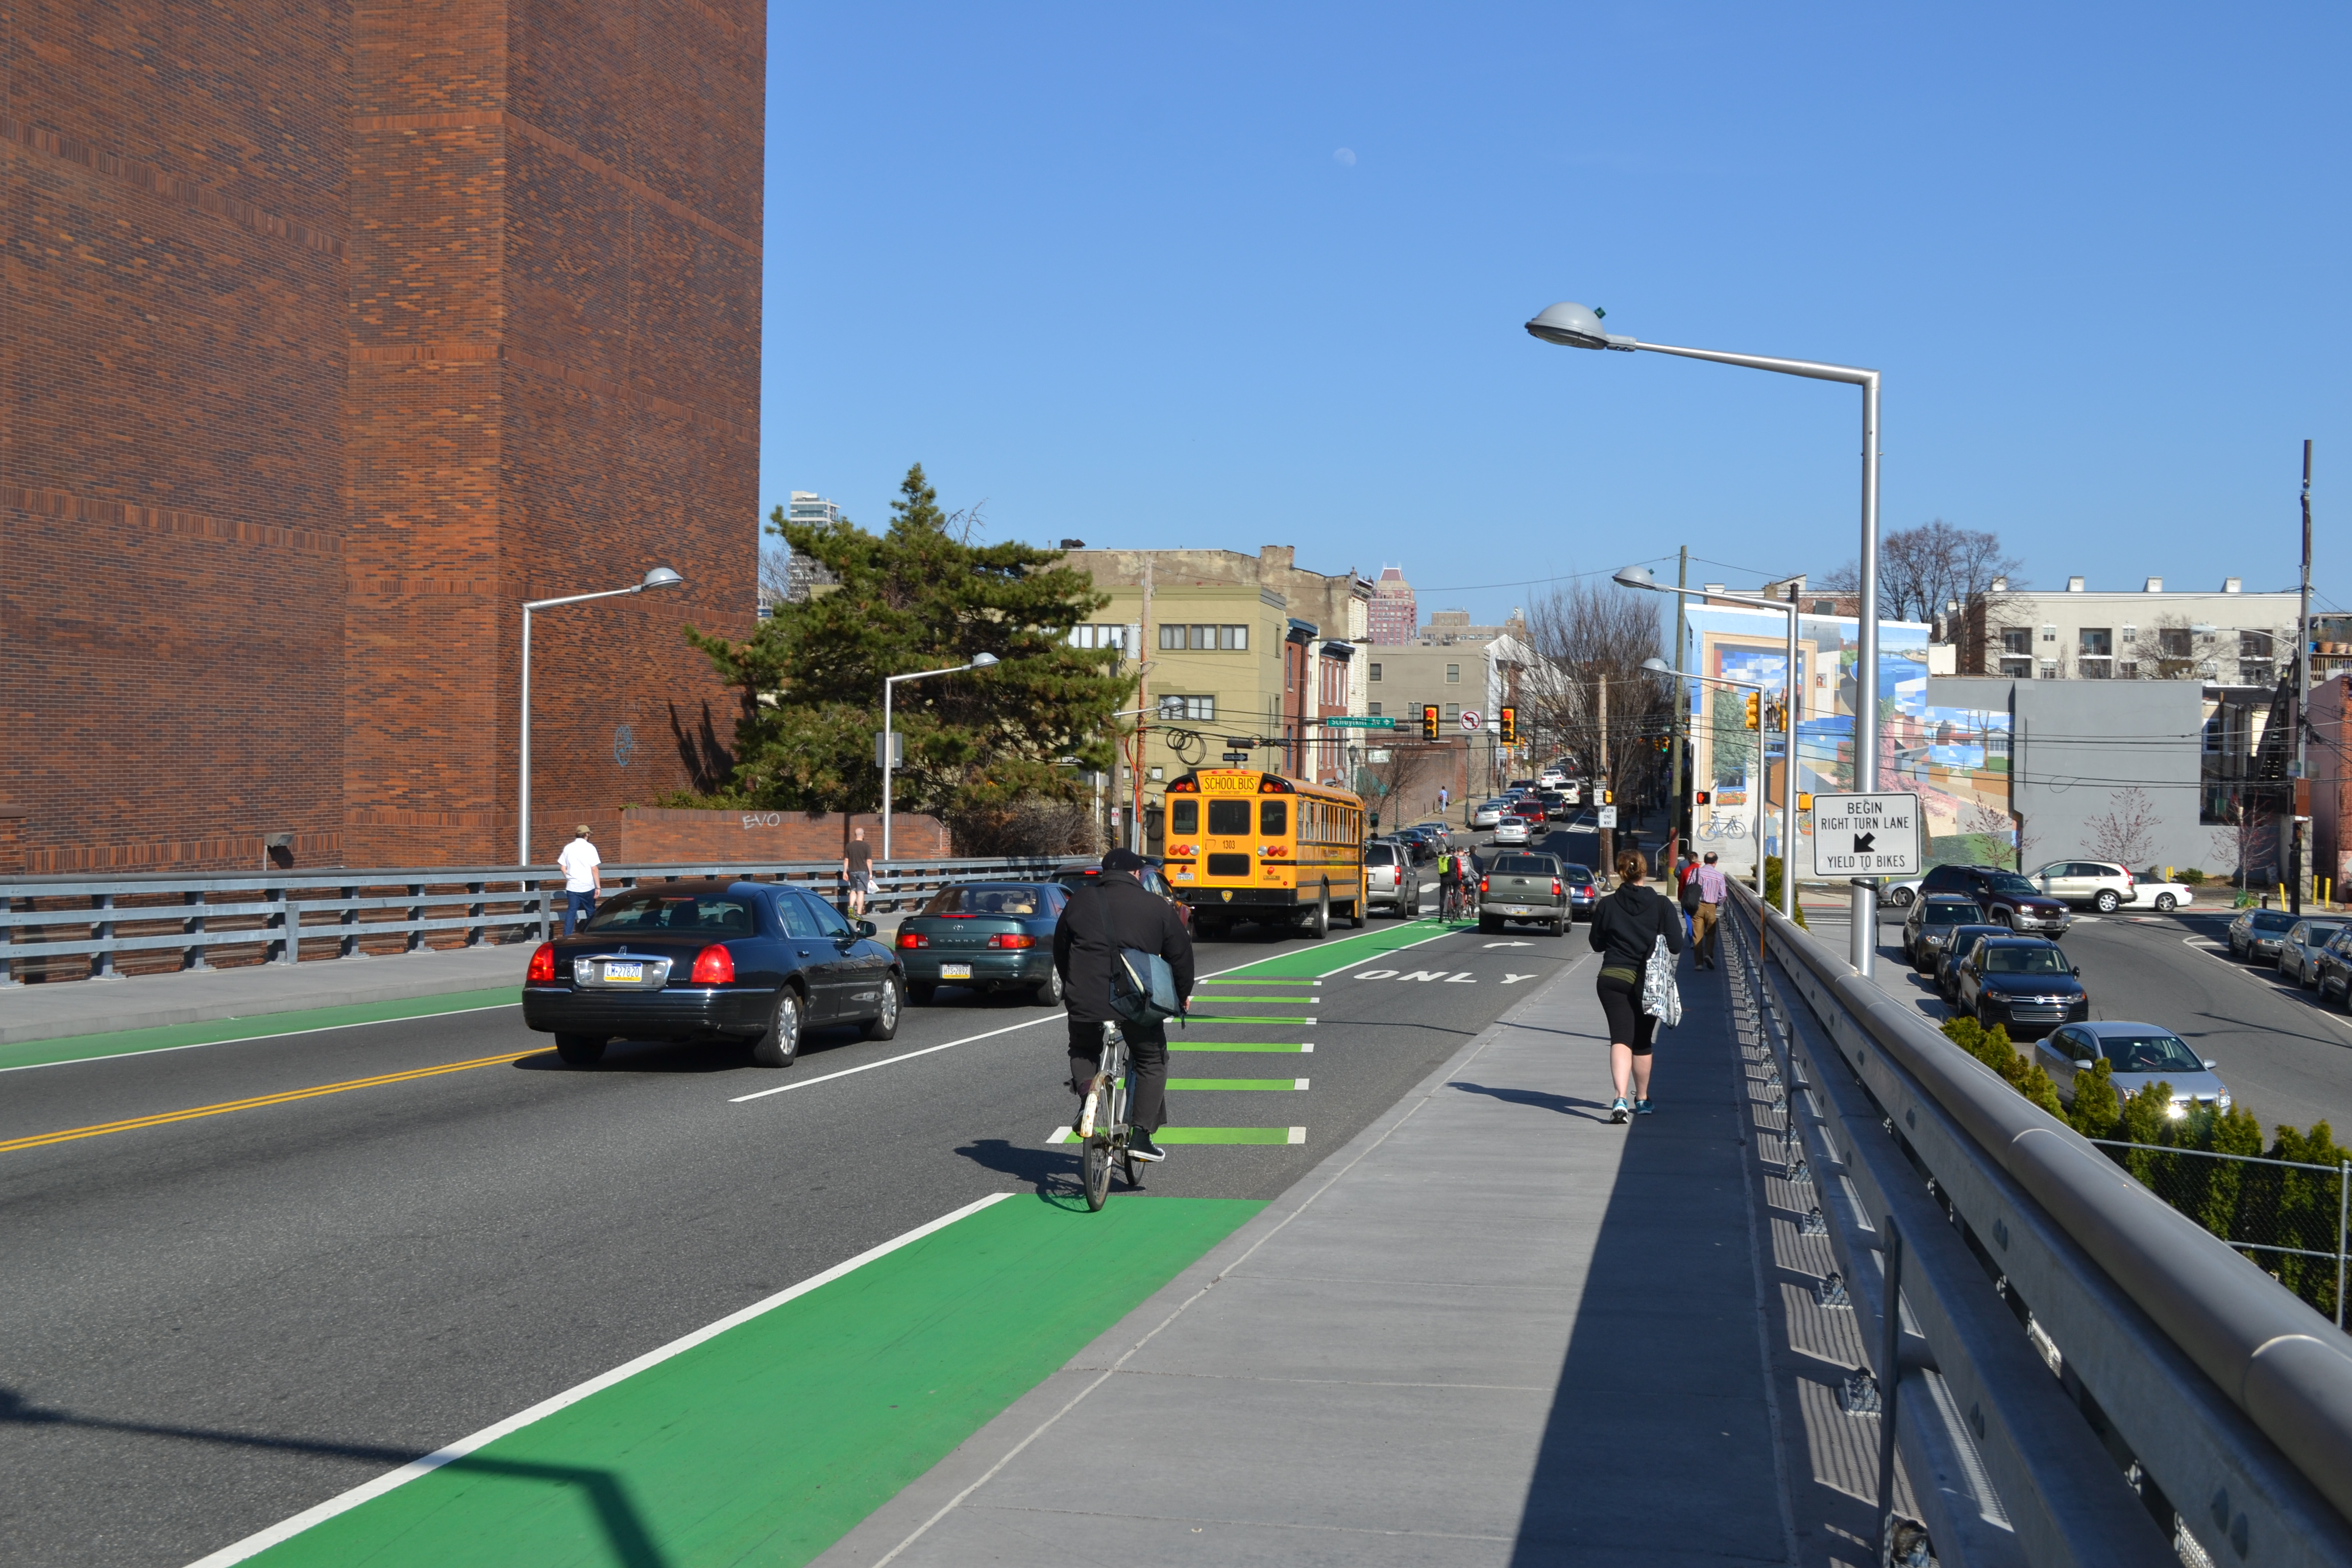 The current bike lane shifts near the Schuylkill Ave end of the bridge